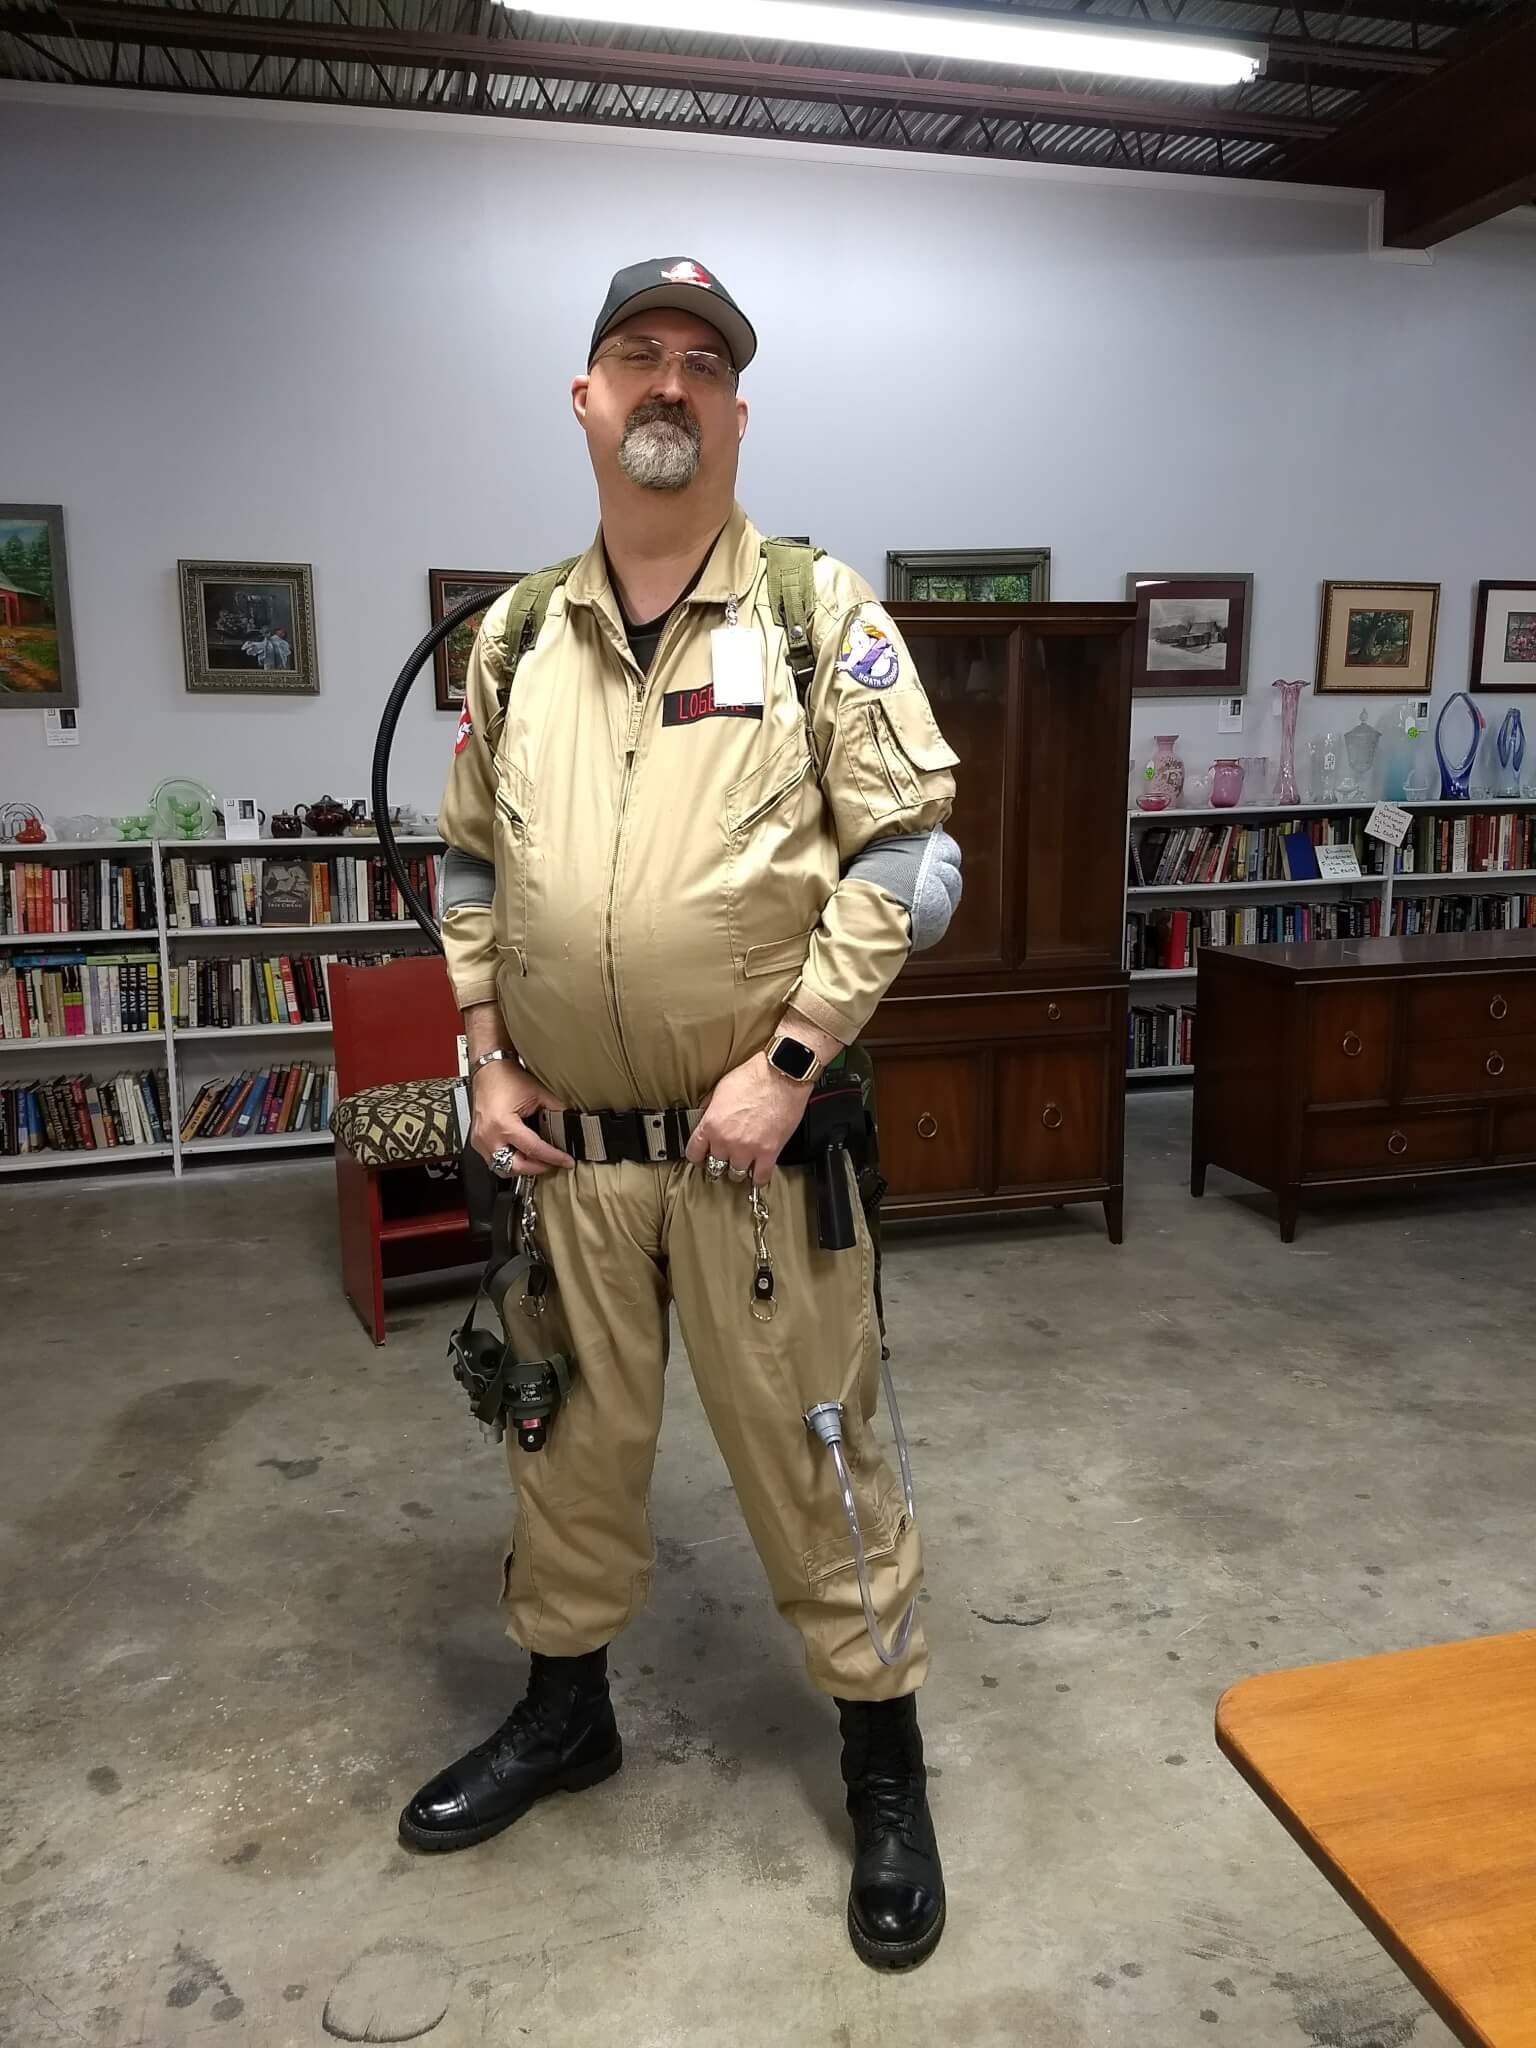 North Georgia Ghostbusters group co-founder Van Loggins